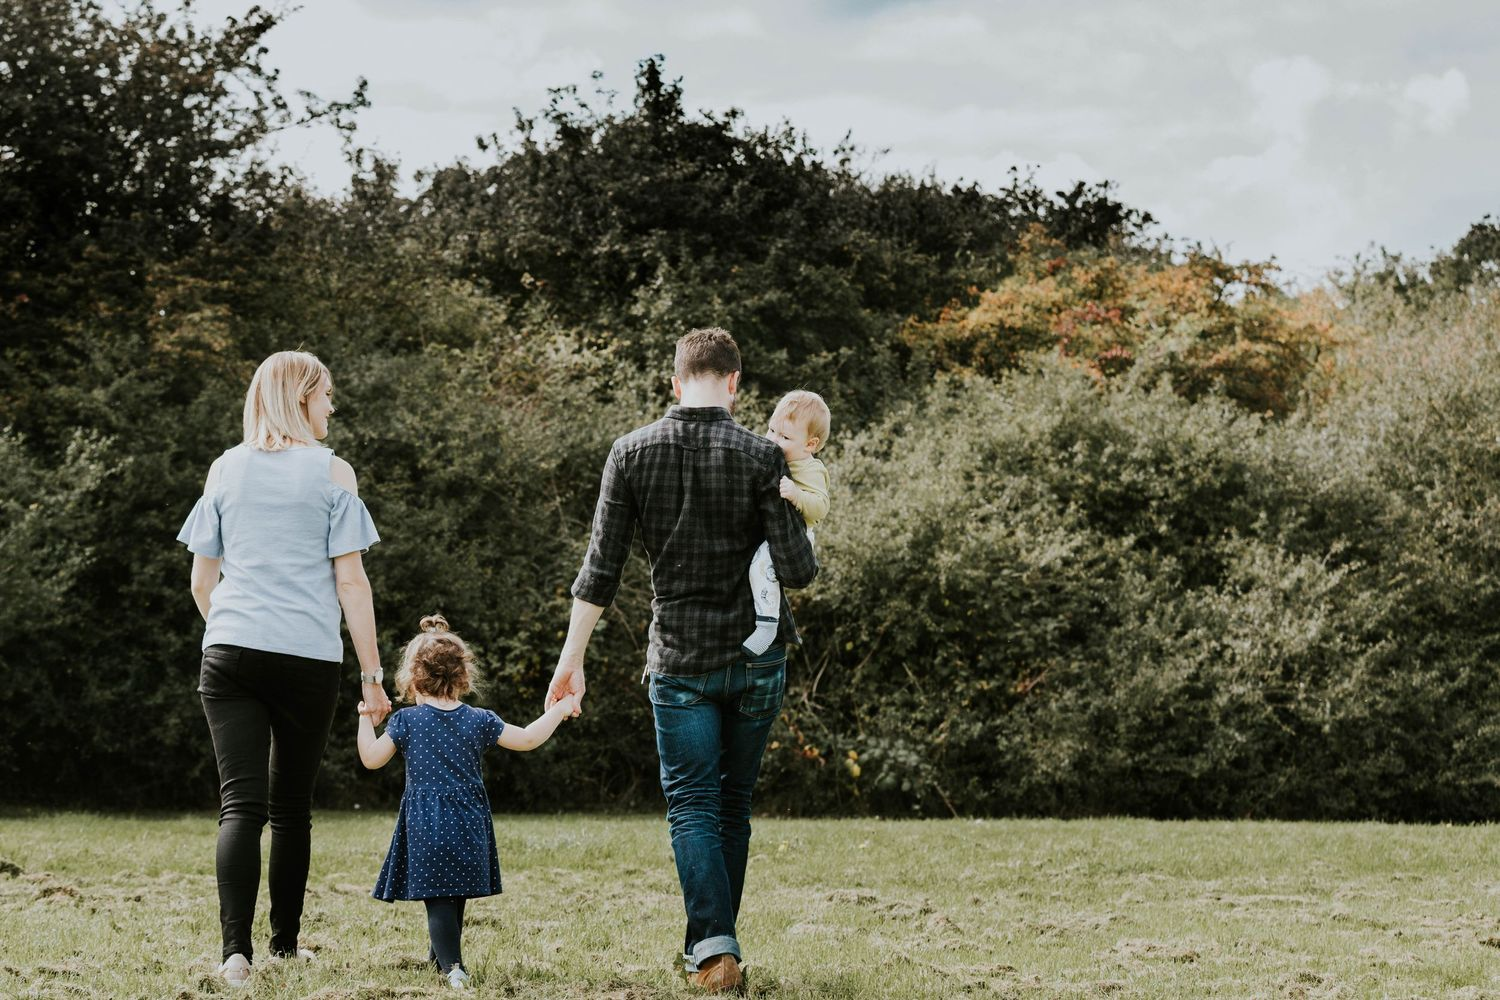 Hornchurch family of four walking in field